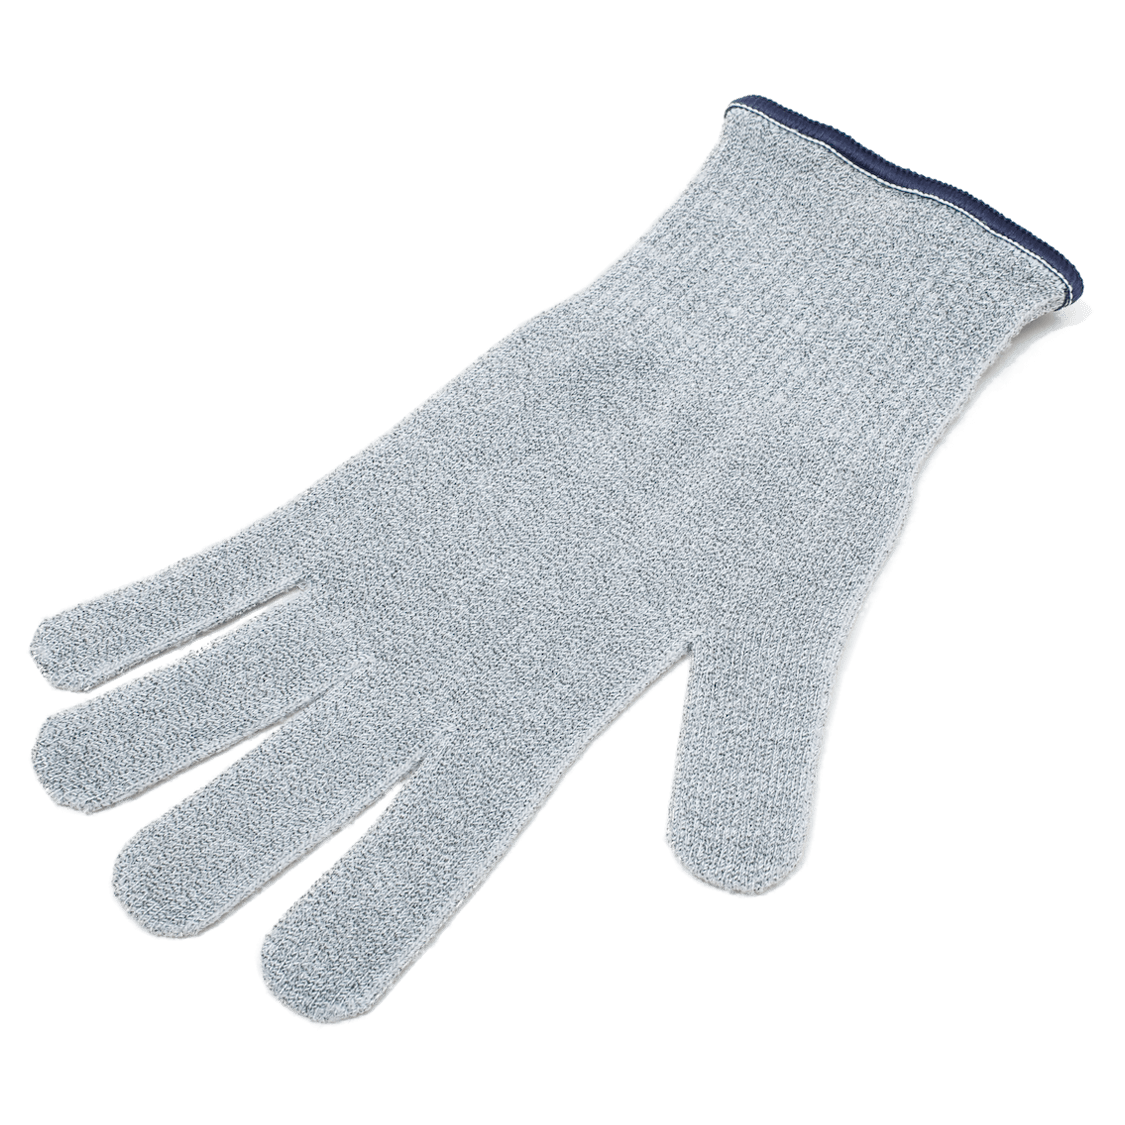 The Best Cut-Resistant Glove   Cook\'s Illustrated